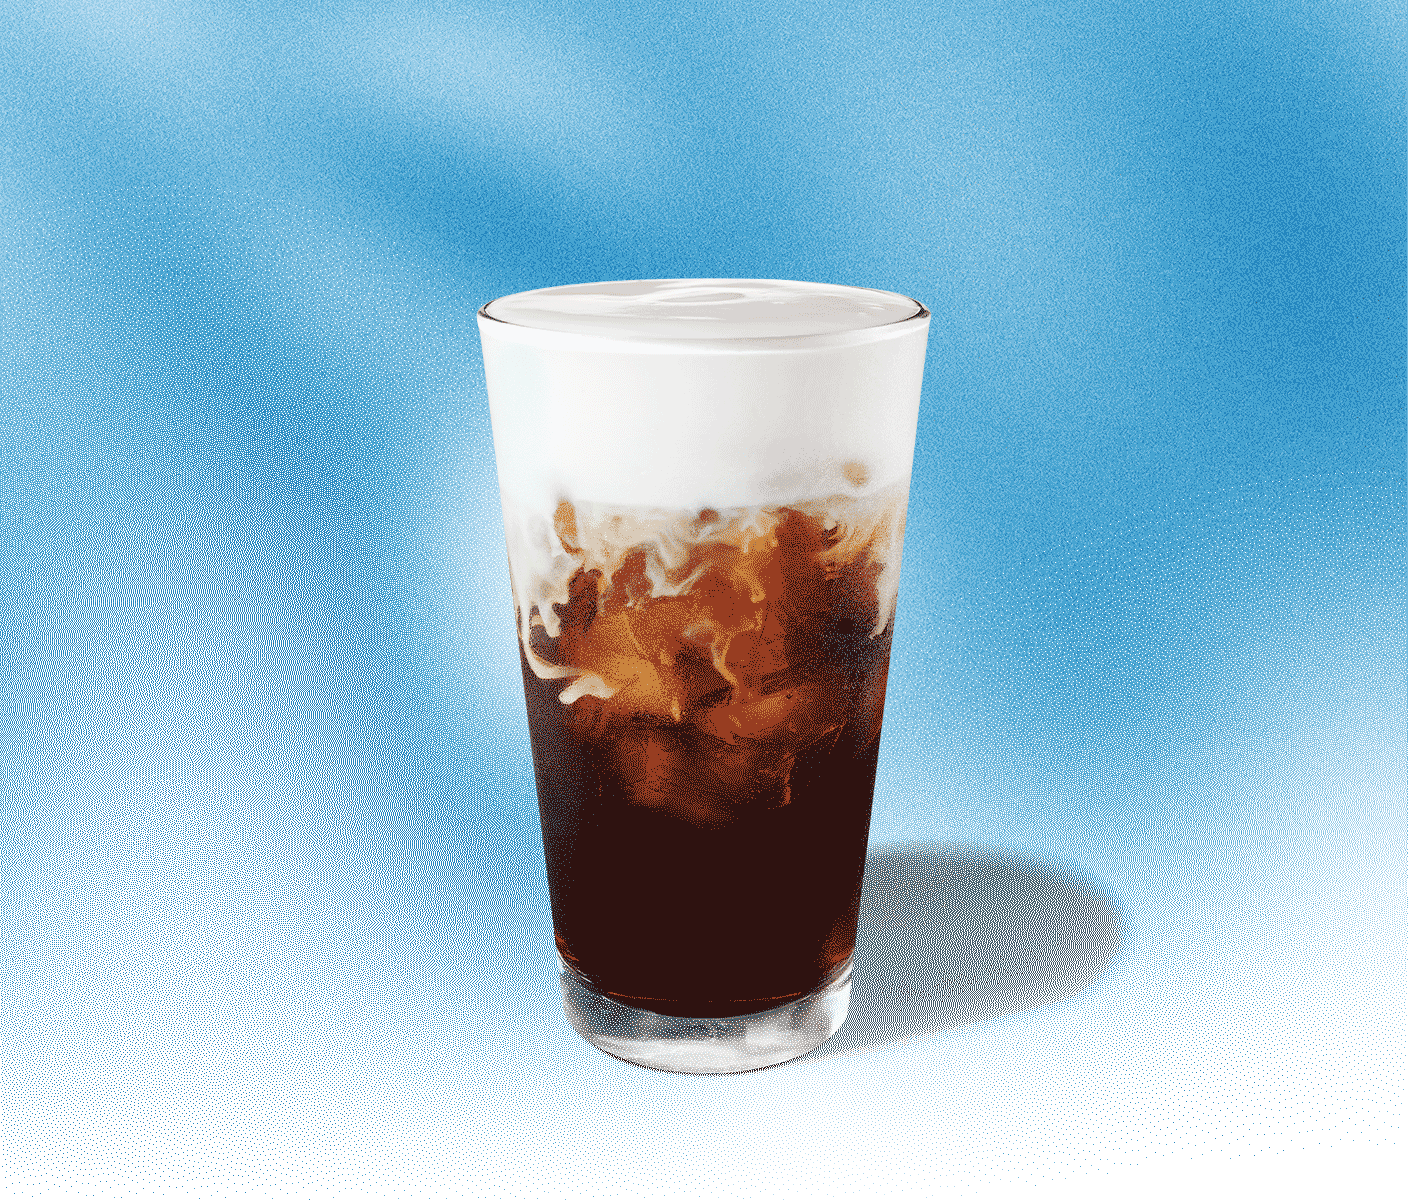 Tall glass of cold coffee with foamy topping